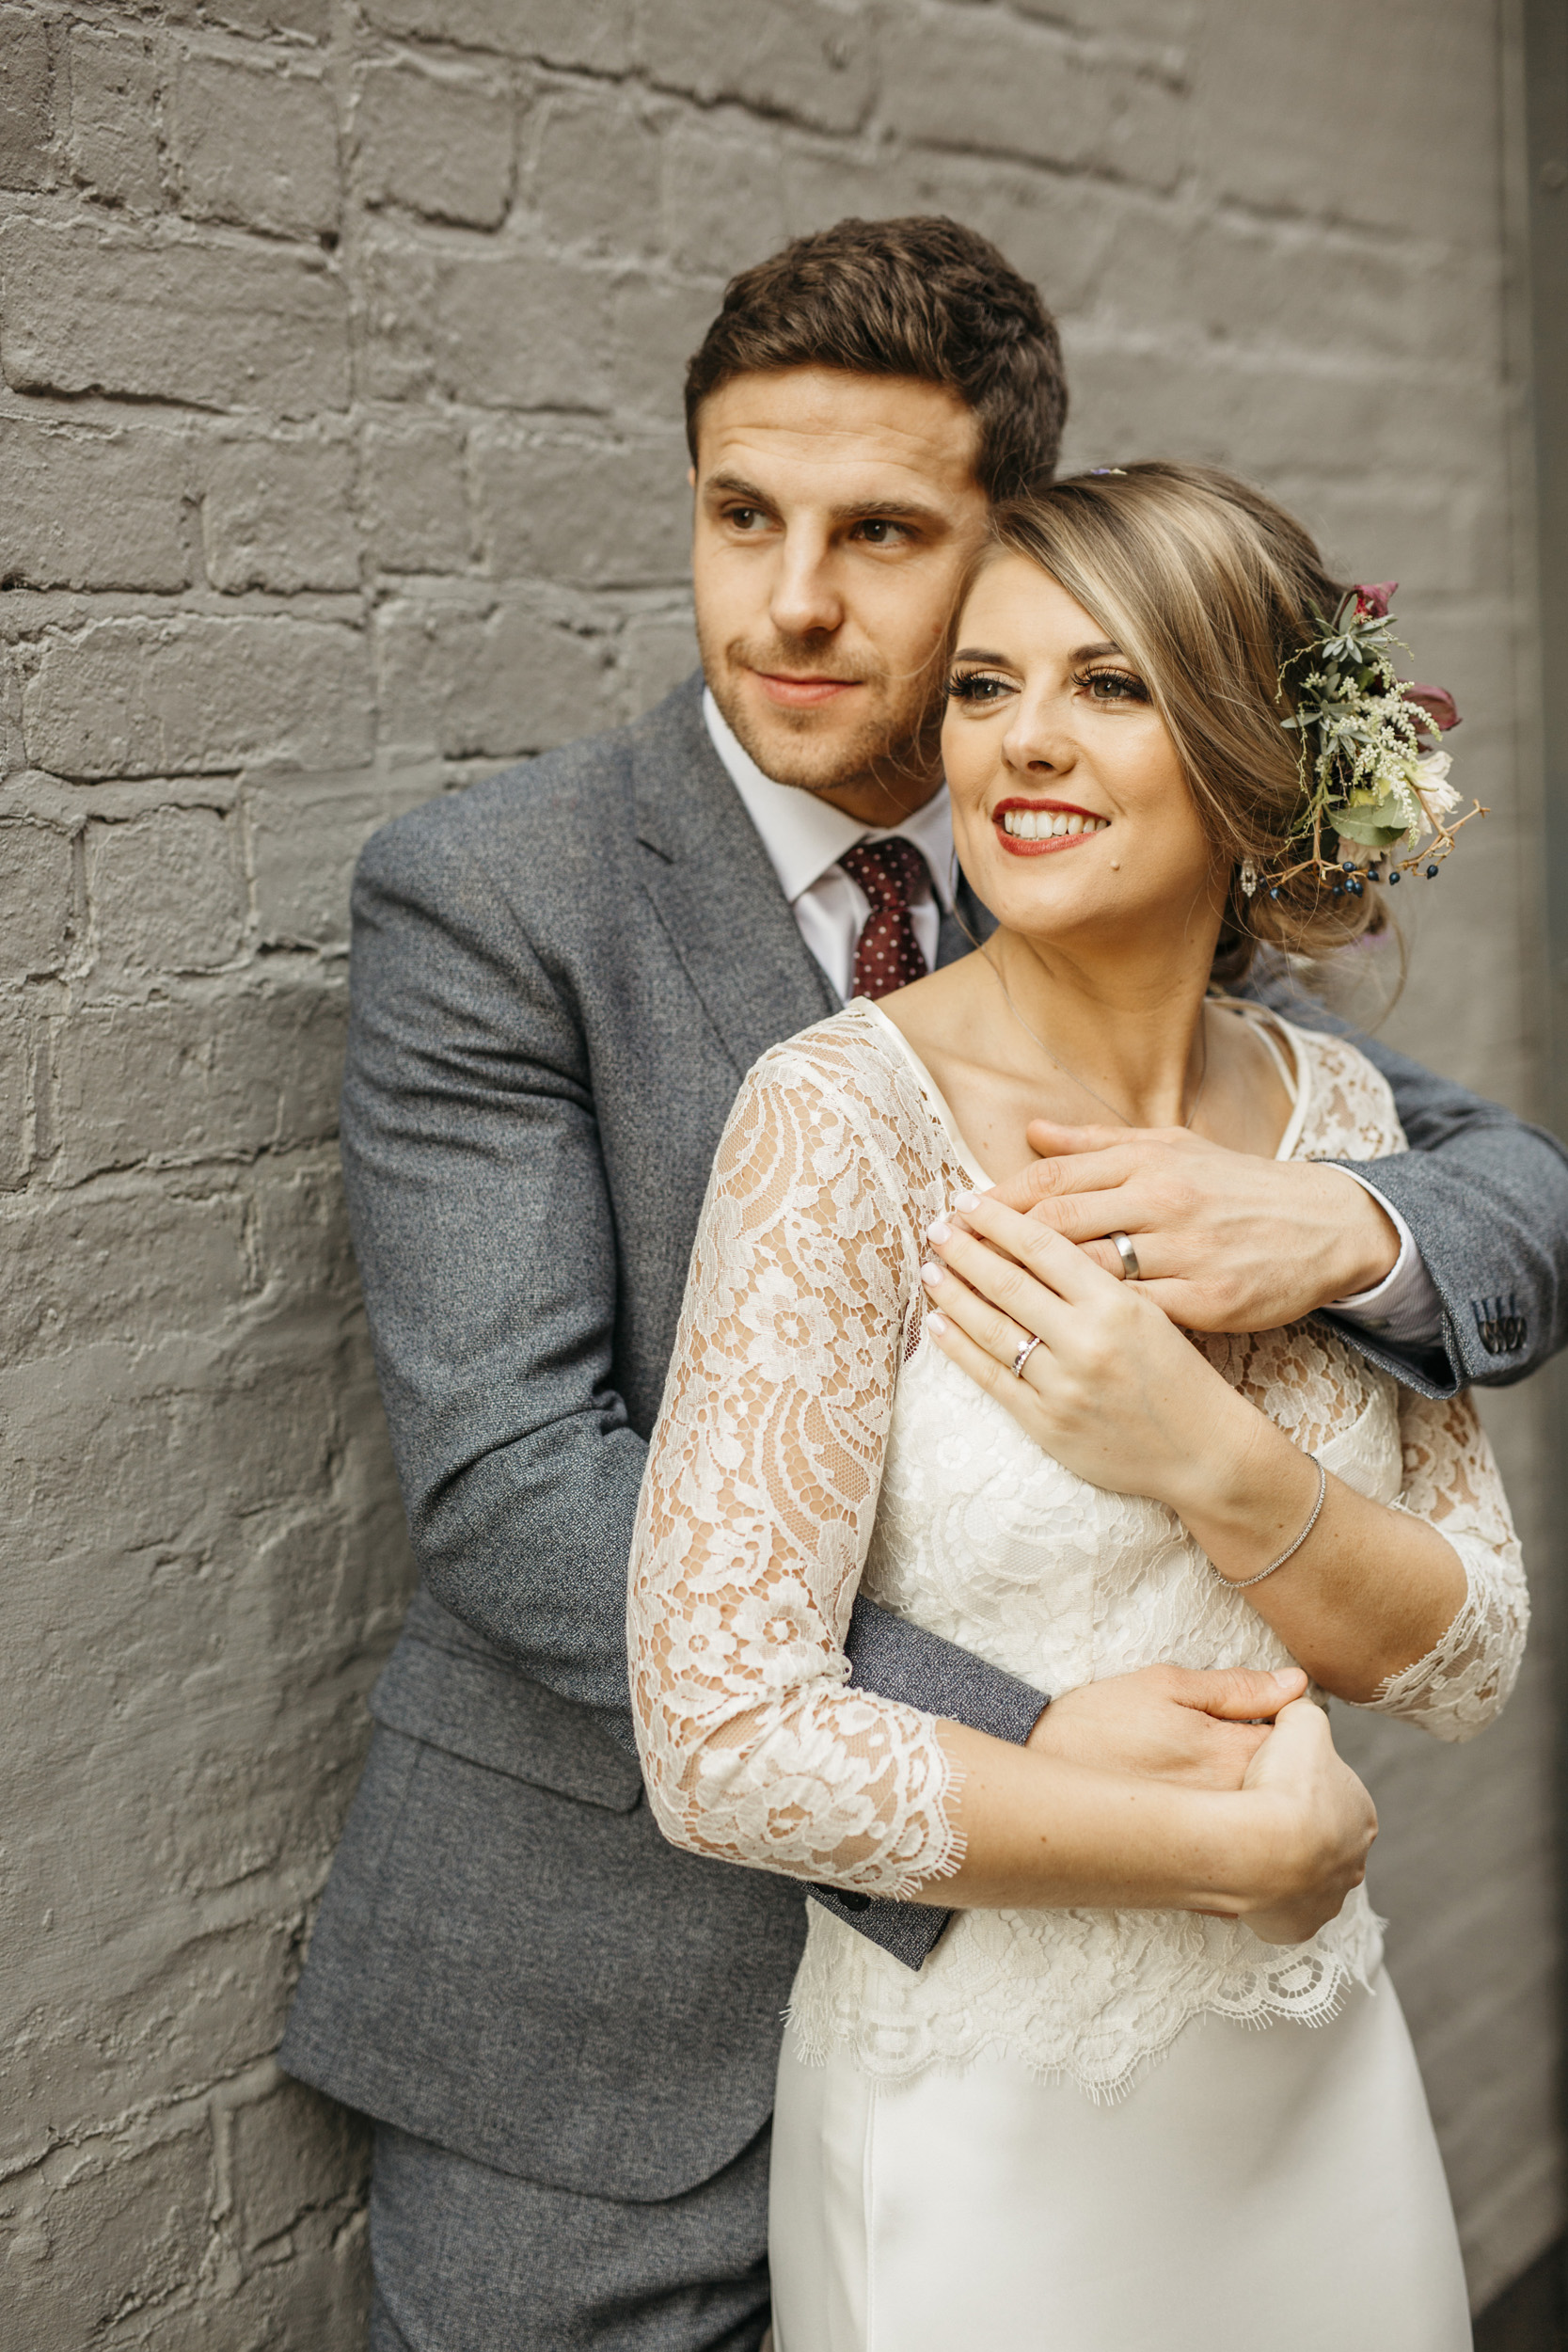 Aimi-Kate-Beaumont-Lace-Wedding-Dress-Sheffield-Kindred-Photography-32.jpg